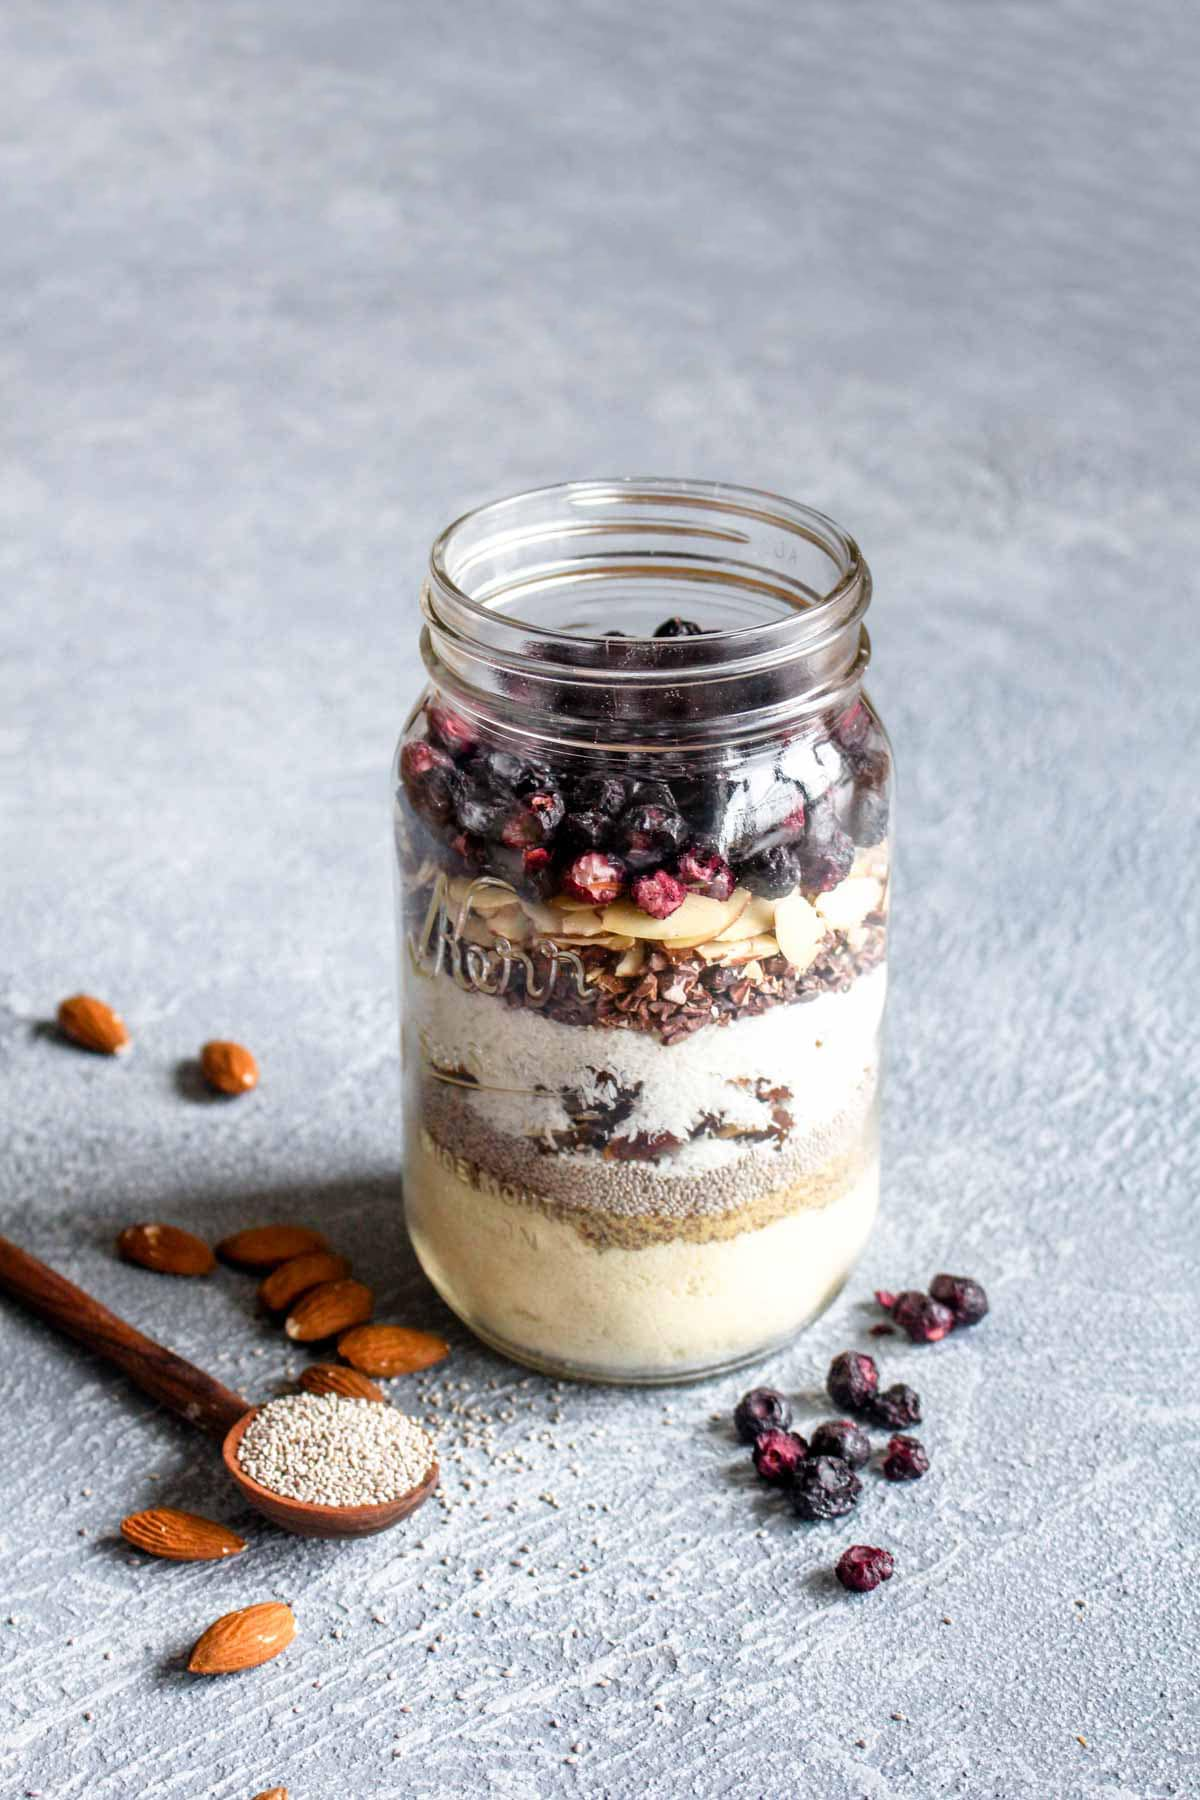 On busy mornings, you'll be thanking your lucky start that you have Paleo Superfood Cereal on deck. This healthy breakfast is packed full of nuts, seeds, and fruits for a satisfying start that will keep you full until lunch. Make a big batch in 10 minutes and then enjoy it all week. Gluten free, vegan & paleo! | CatchingSeeds.com